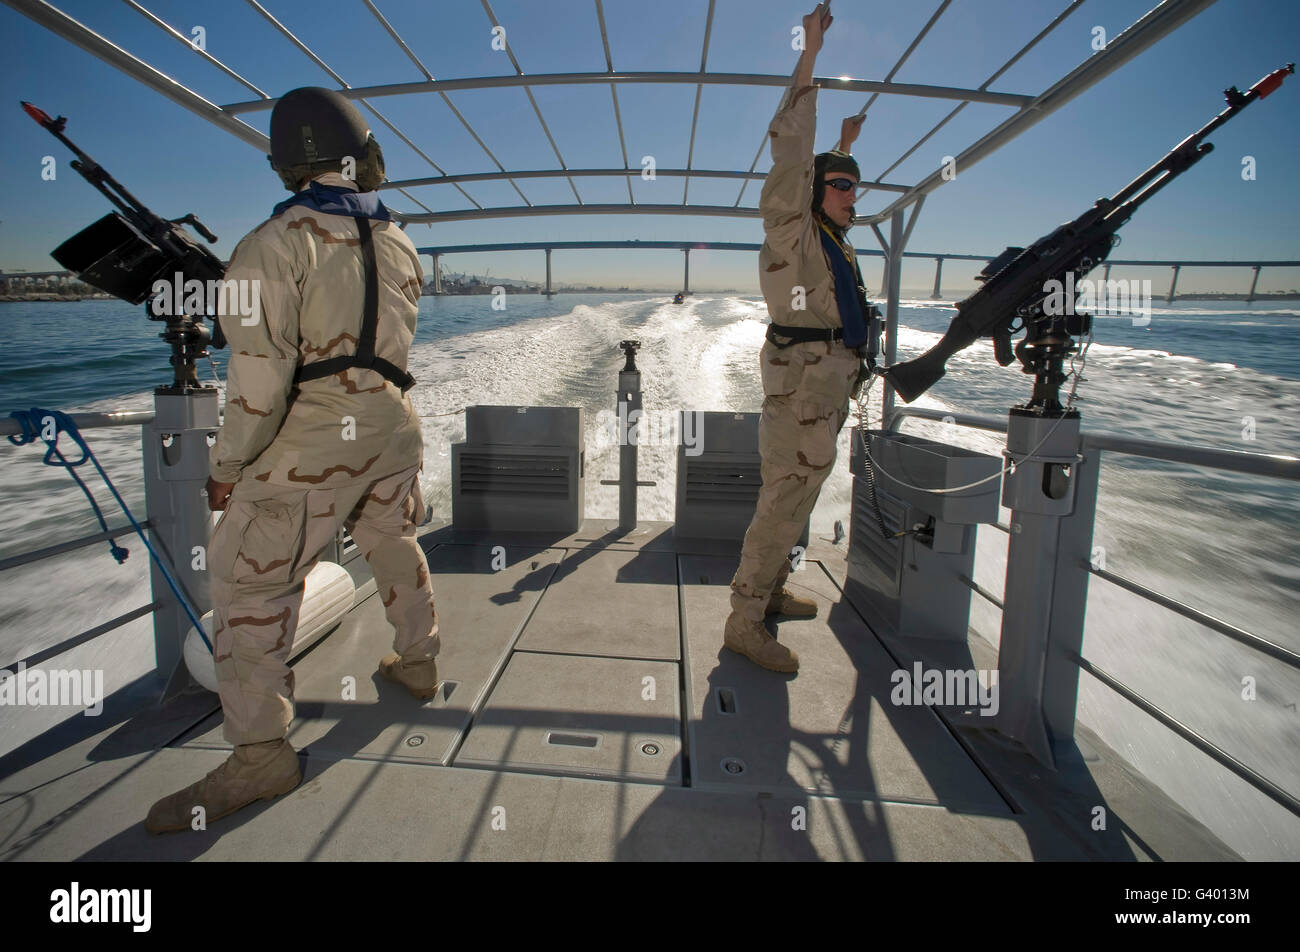 Soldiers serve as aft lookouts on a patrol boat, San Diego Bay. Stock Photo